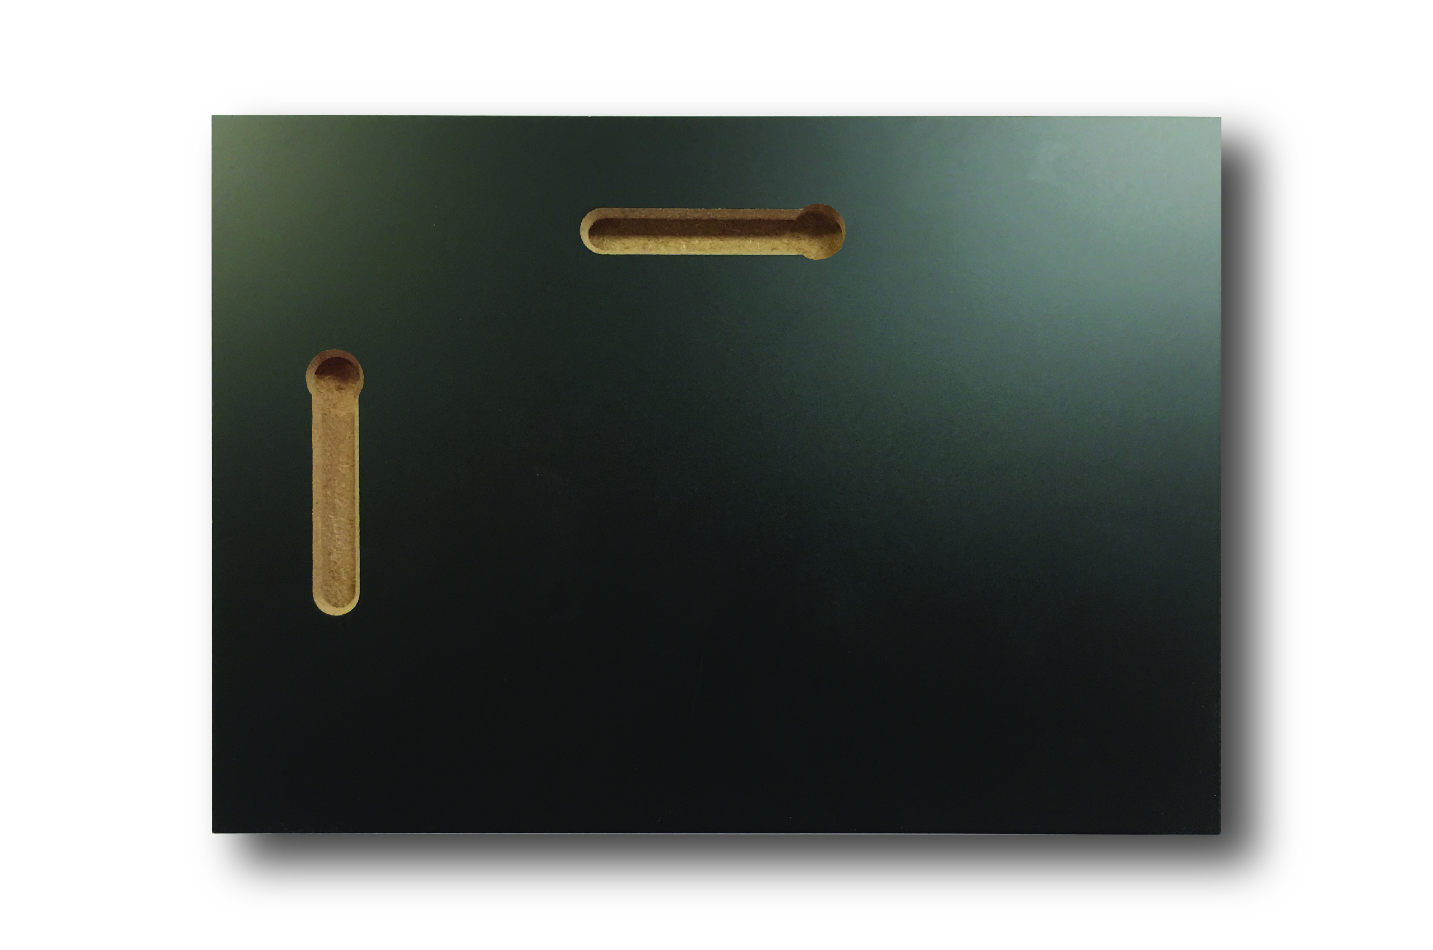 The back of a plaque showing the two keyholes for wall mounting.